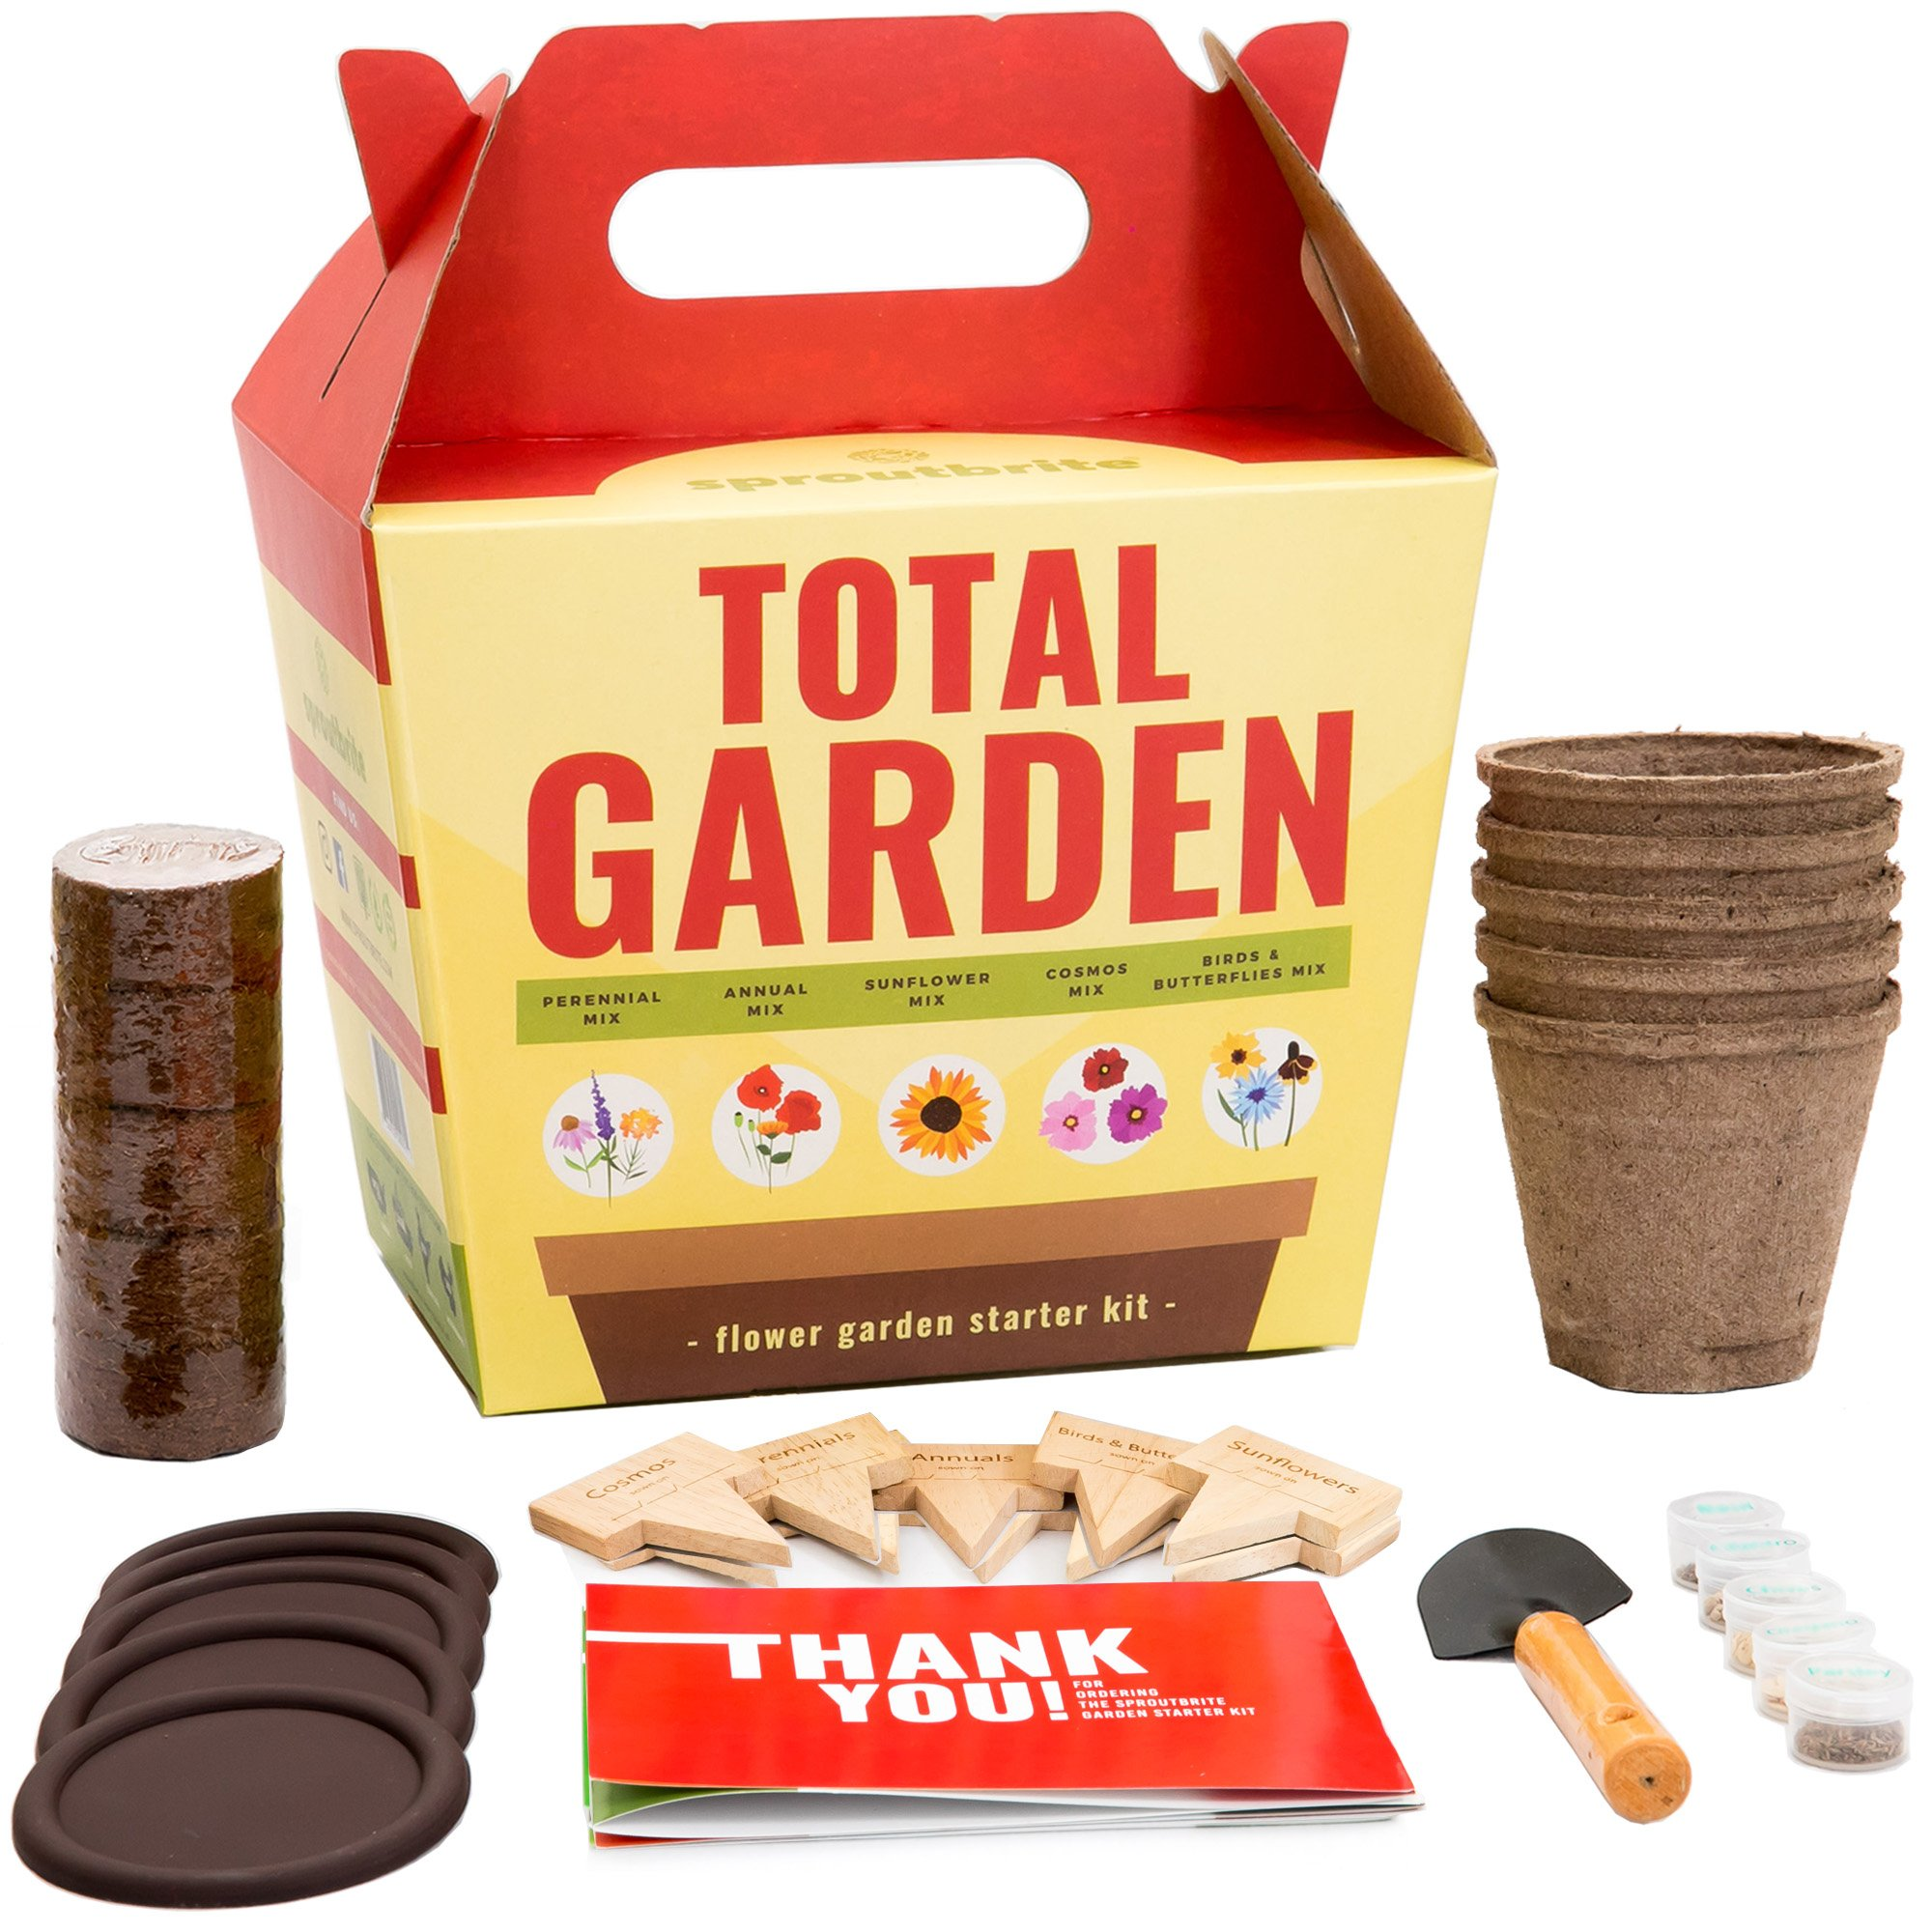 Sproutbrite Wildflower Garden Starter Kit - Grow Dozens of Flowers from Seed - A Complete Gardening Gift kit for Growing Indoors or Outdoors by Sproutbrite